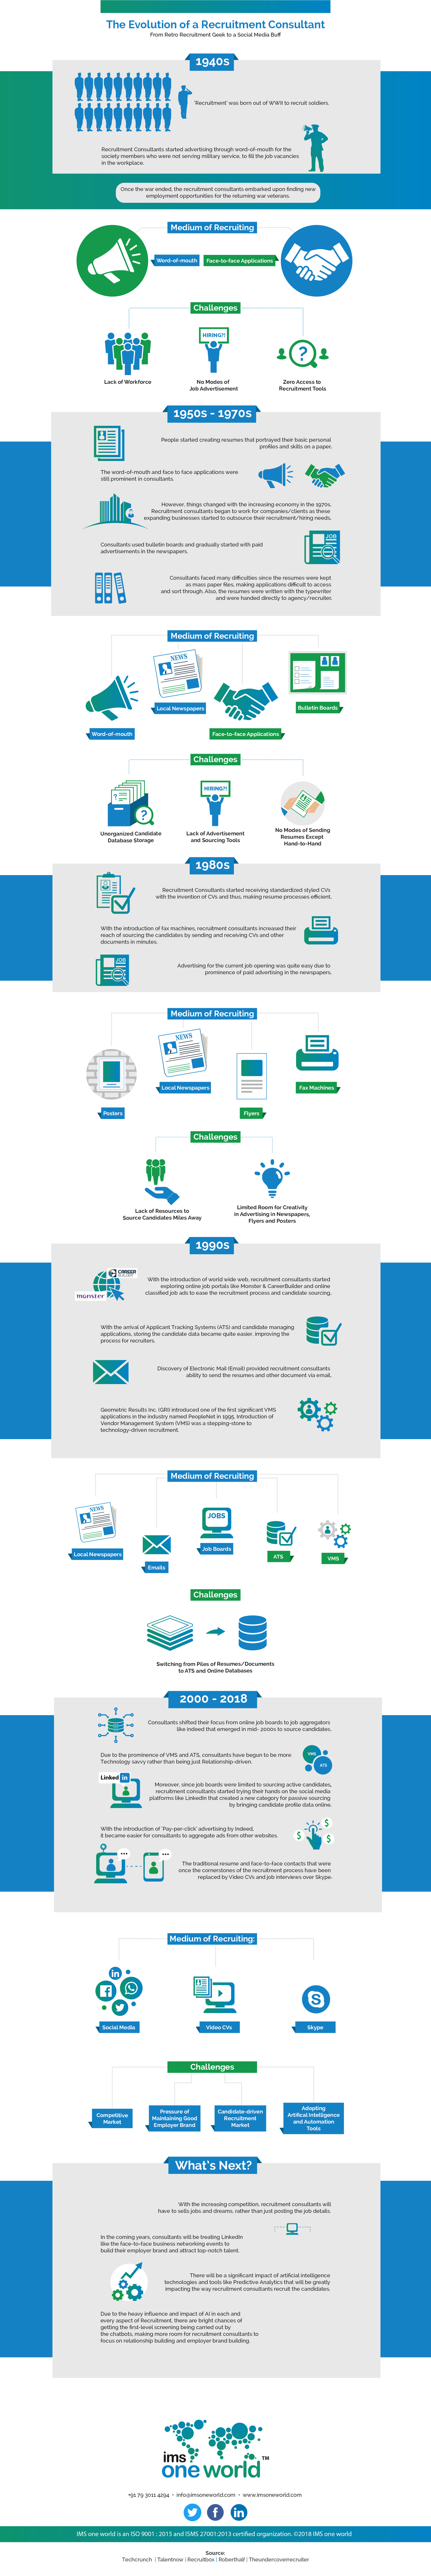 The Evolution of a Recruitment Consultant [Infographic]